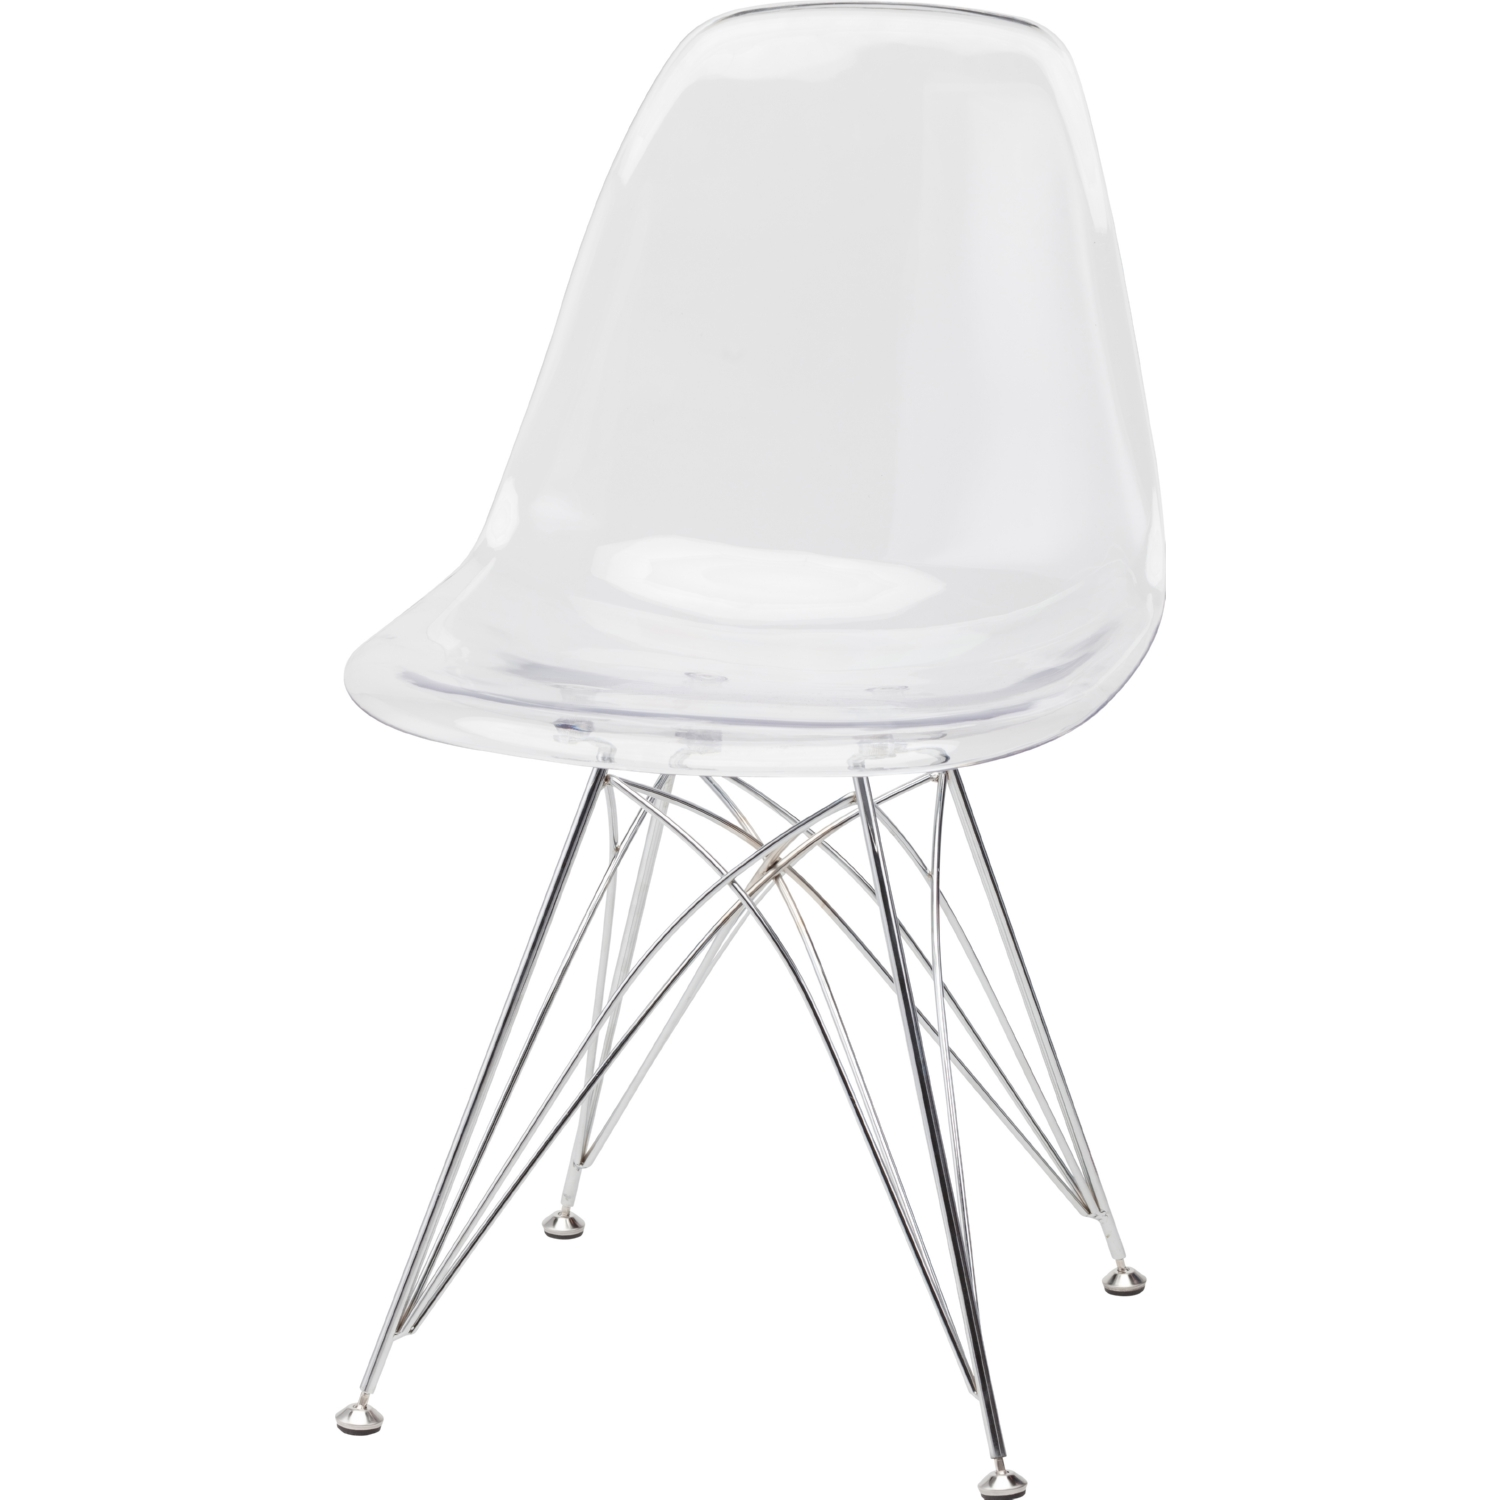 Nuevo Modern Furniture HGQM148 Stylus Dining Chair w Clear Seat